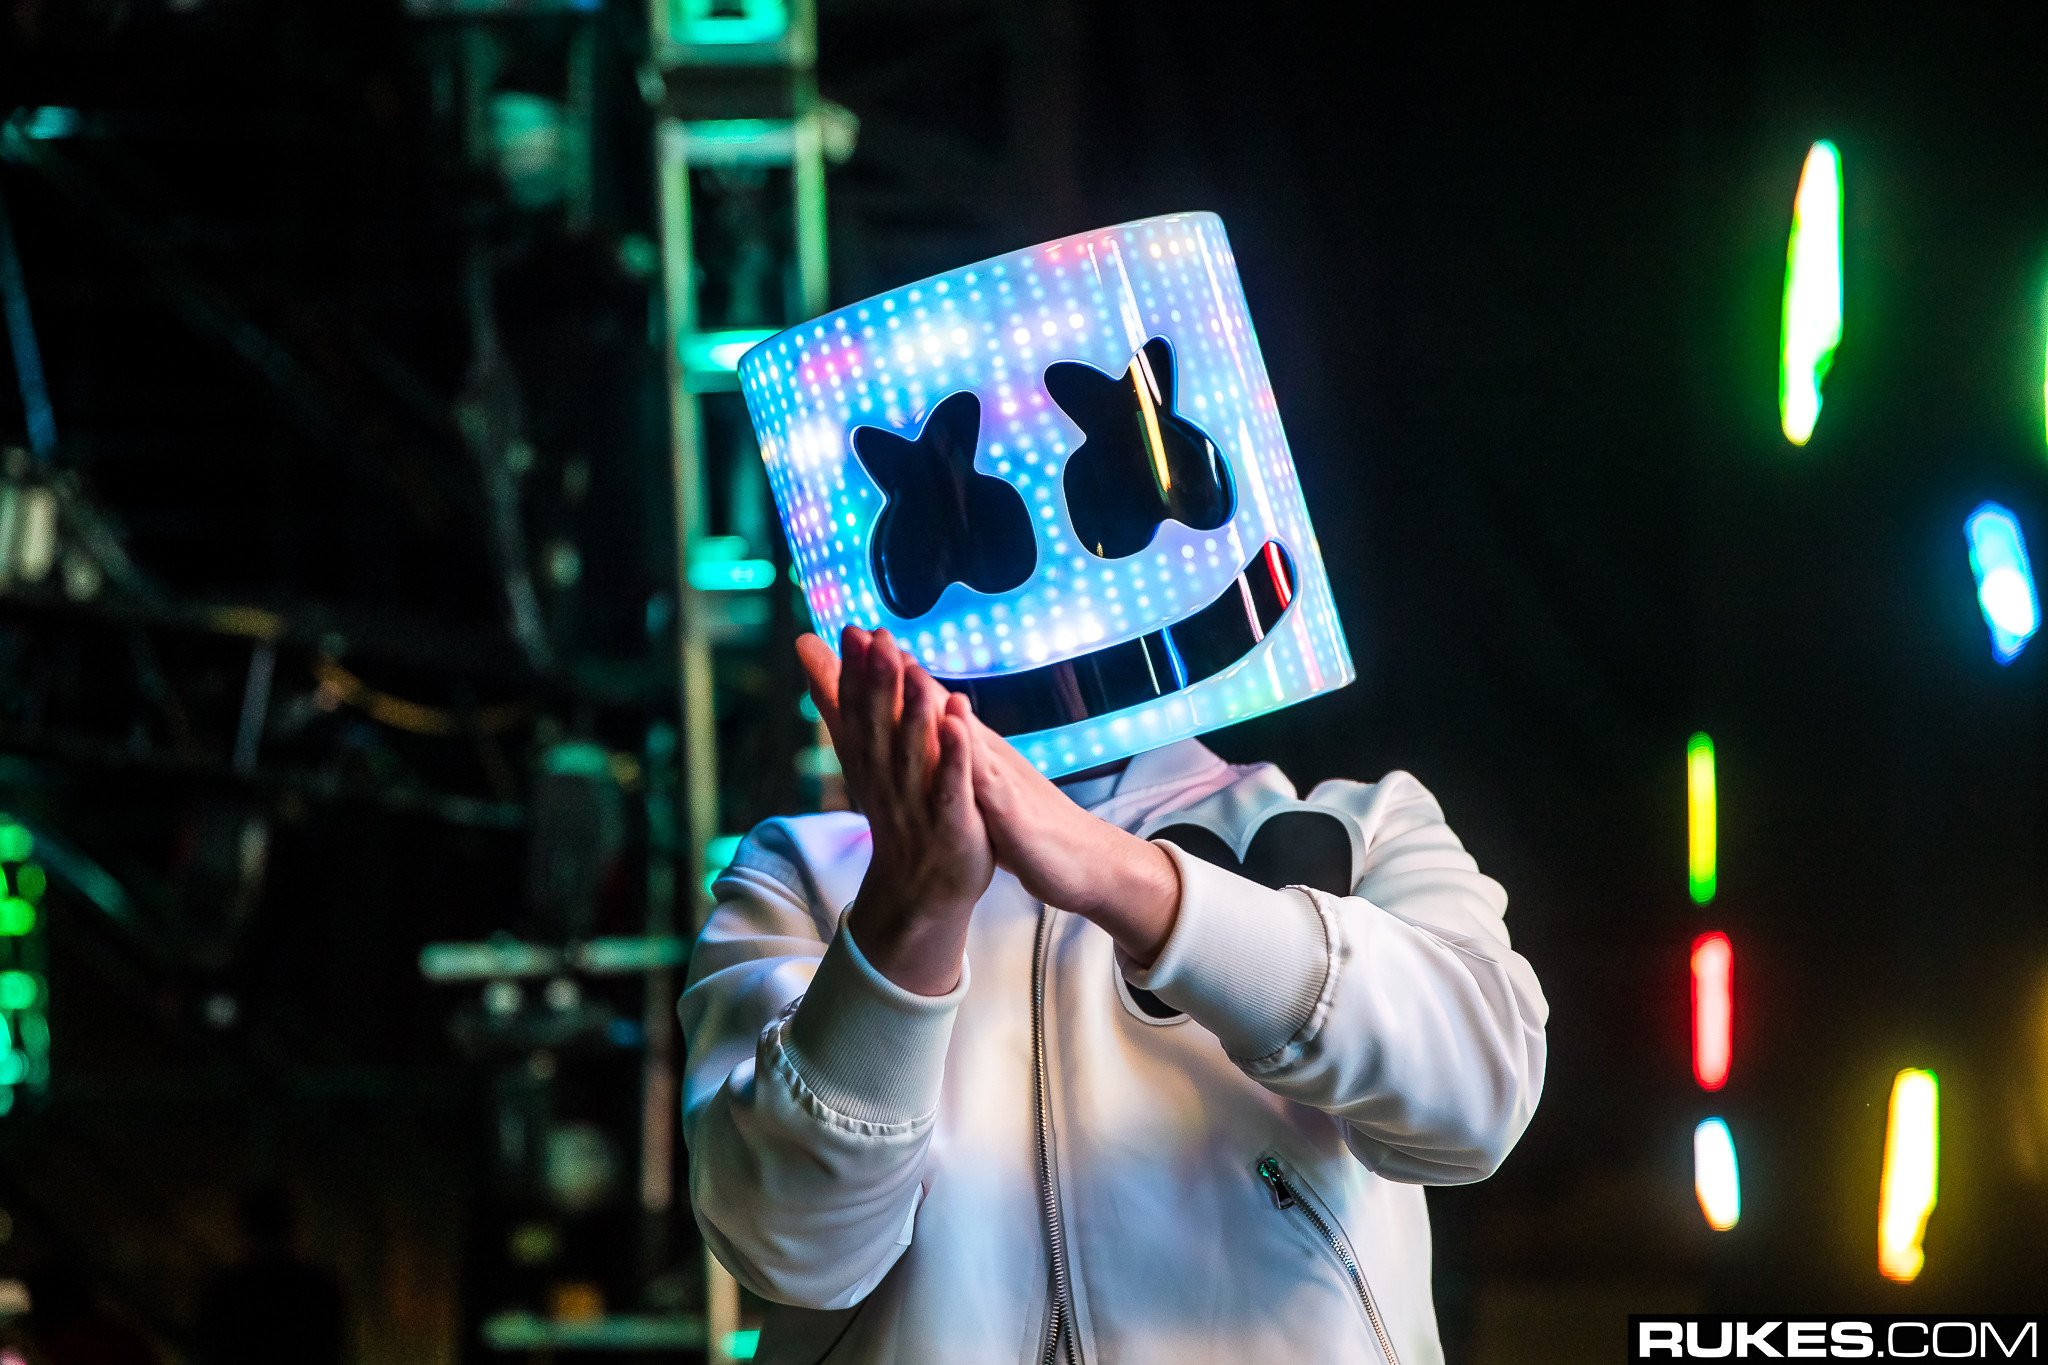 Meet marshmellos mom in this special edition of his web series marshmello stopboris Choice Image